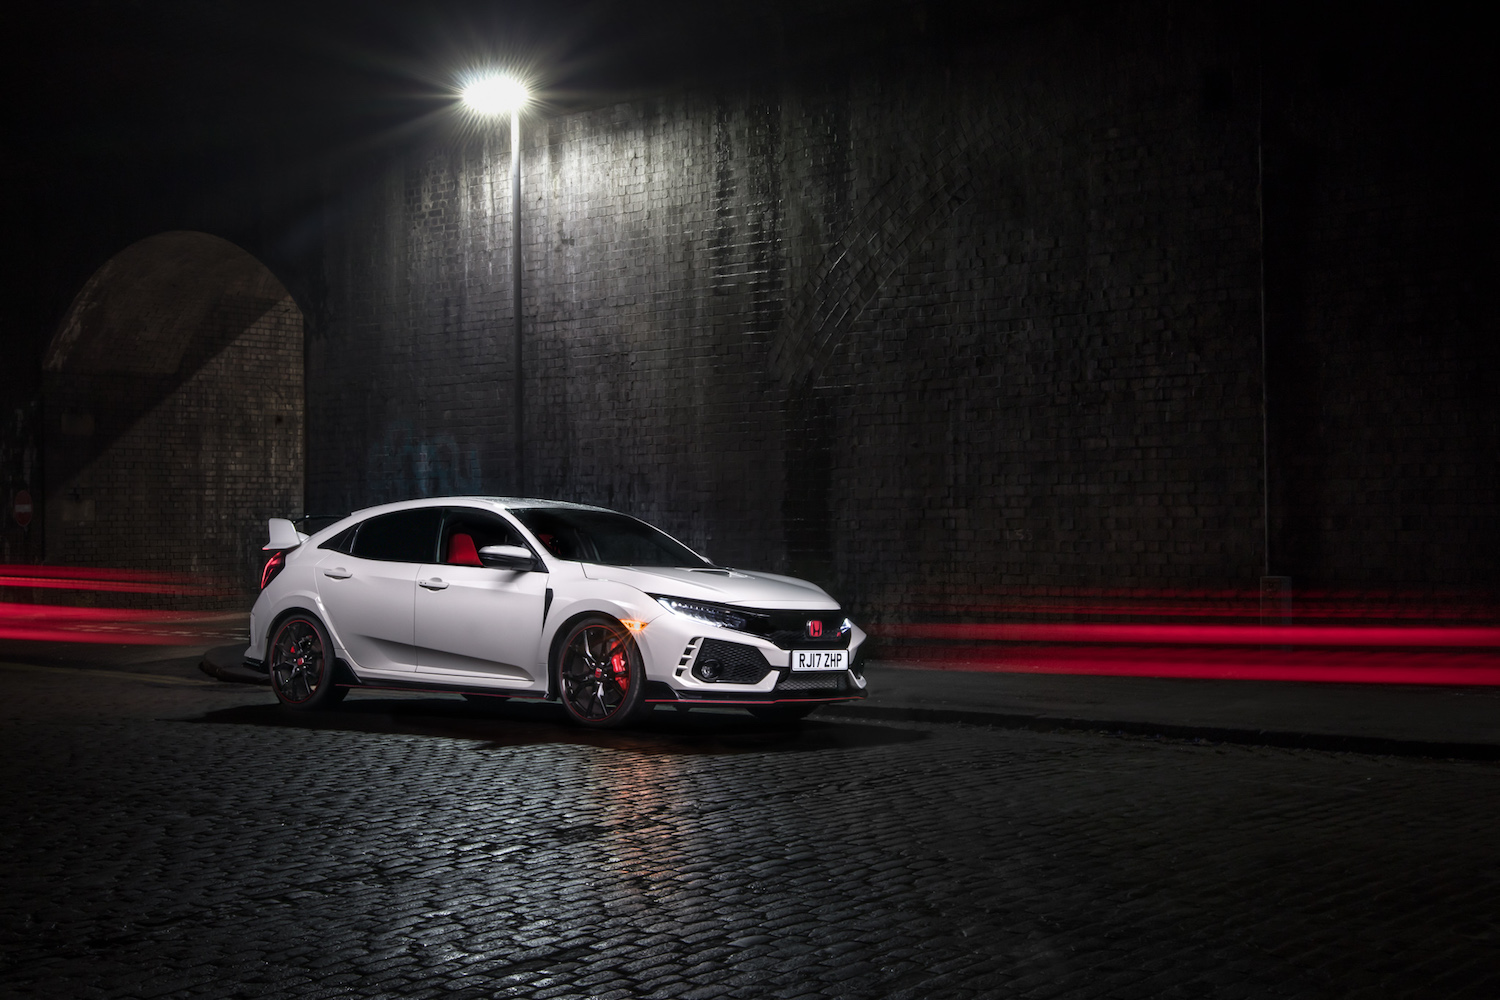 Honda Civic Type R FK8 Review - 2018 (0-60mph in 5.8 Secs / 169mph)